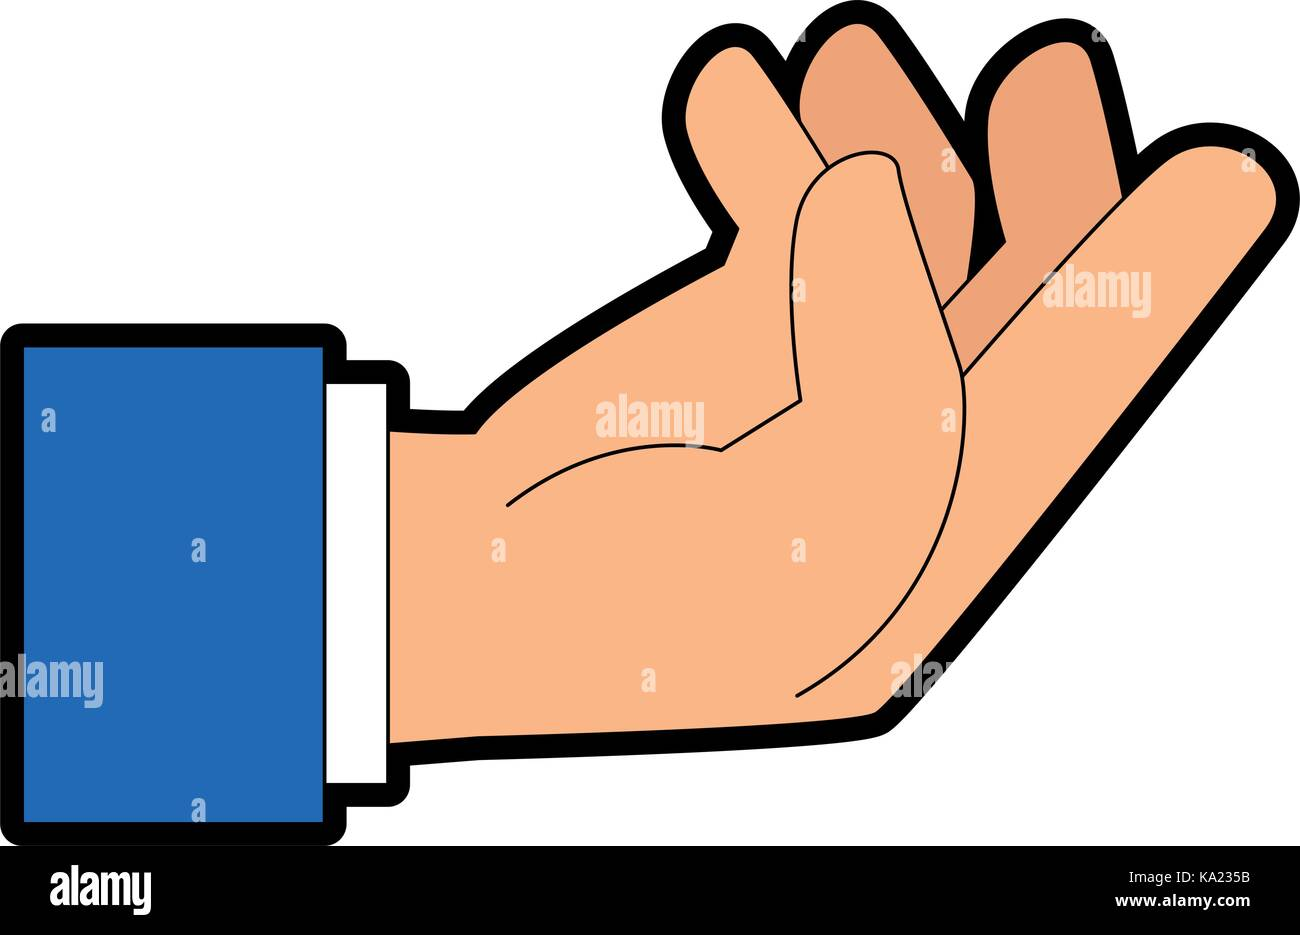 human hand catching an object essay Steps to writing a summary write your essay the bones in bat wings are much like those in arms and the human hand, with a thumb and four fingers.